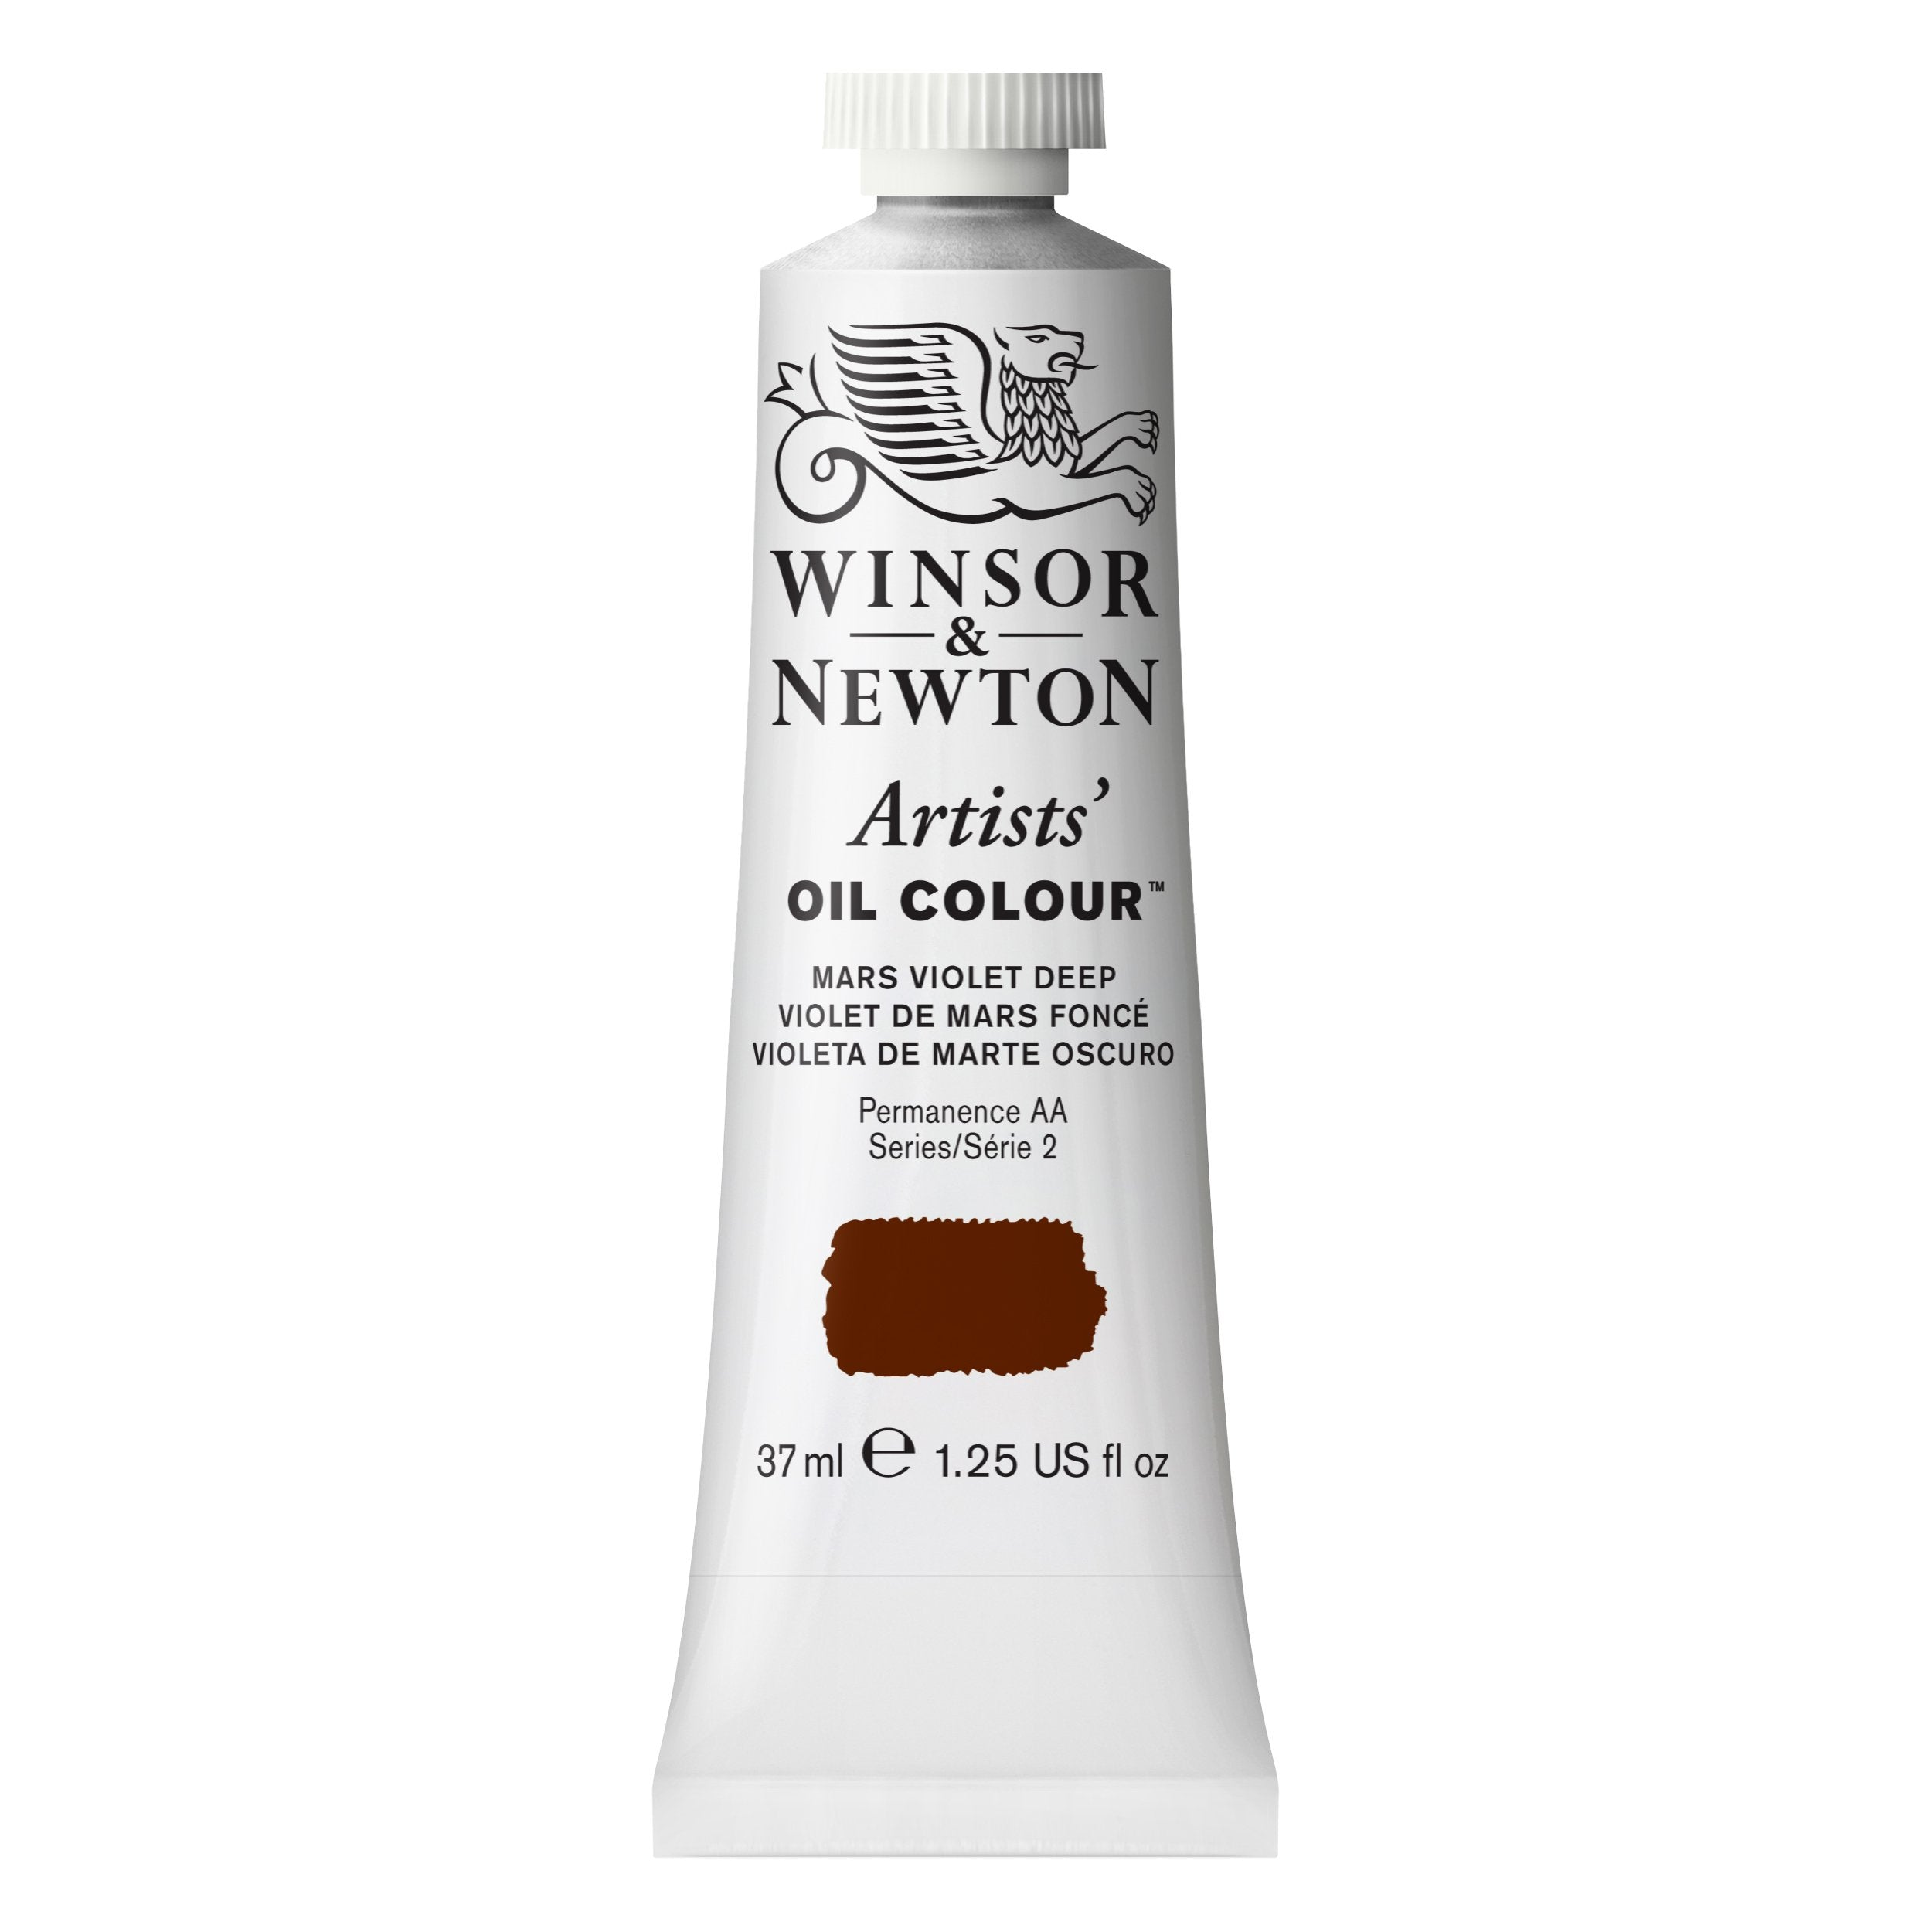 Winsor & Newton Artists' Oil Color, 37ml, Mars Violet Deep